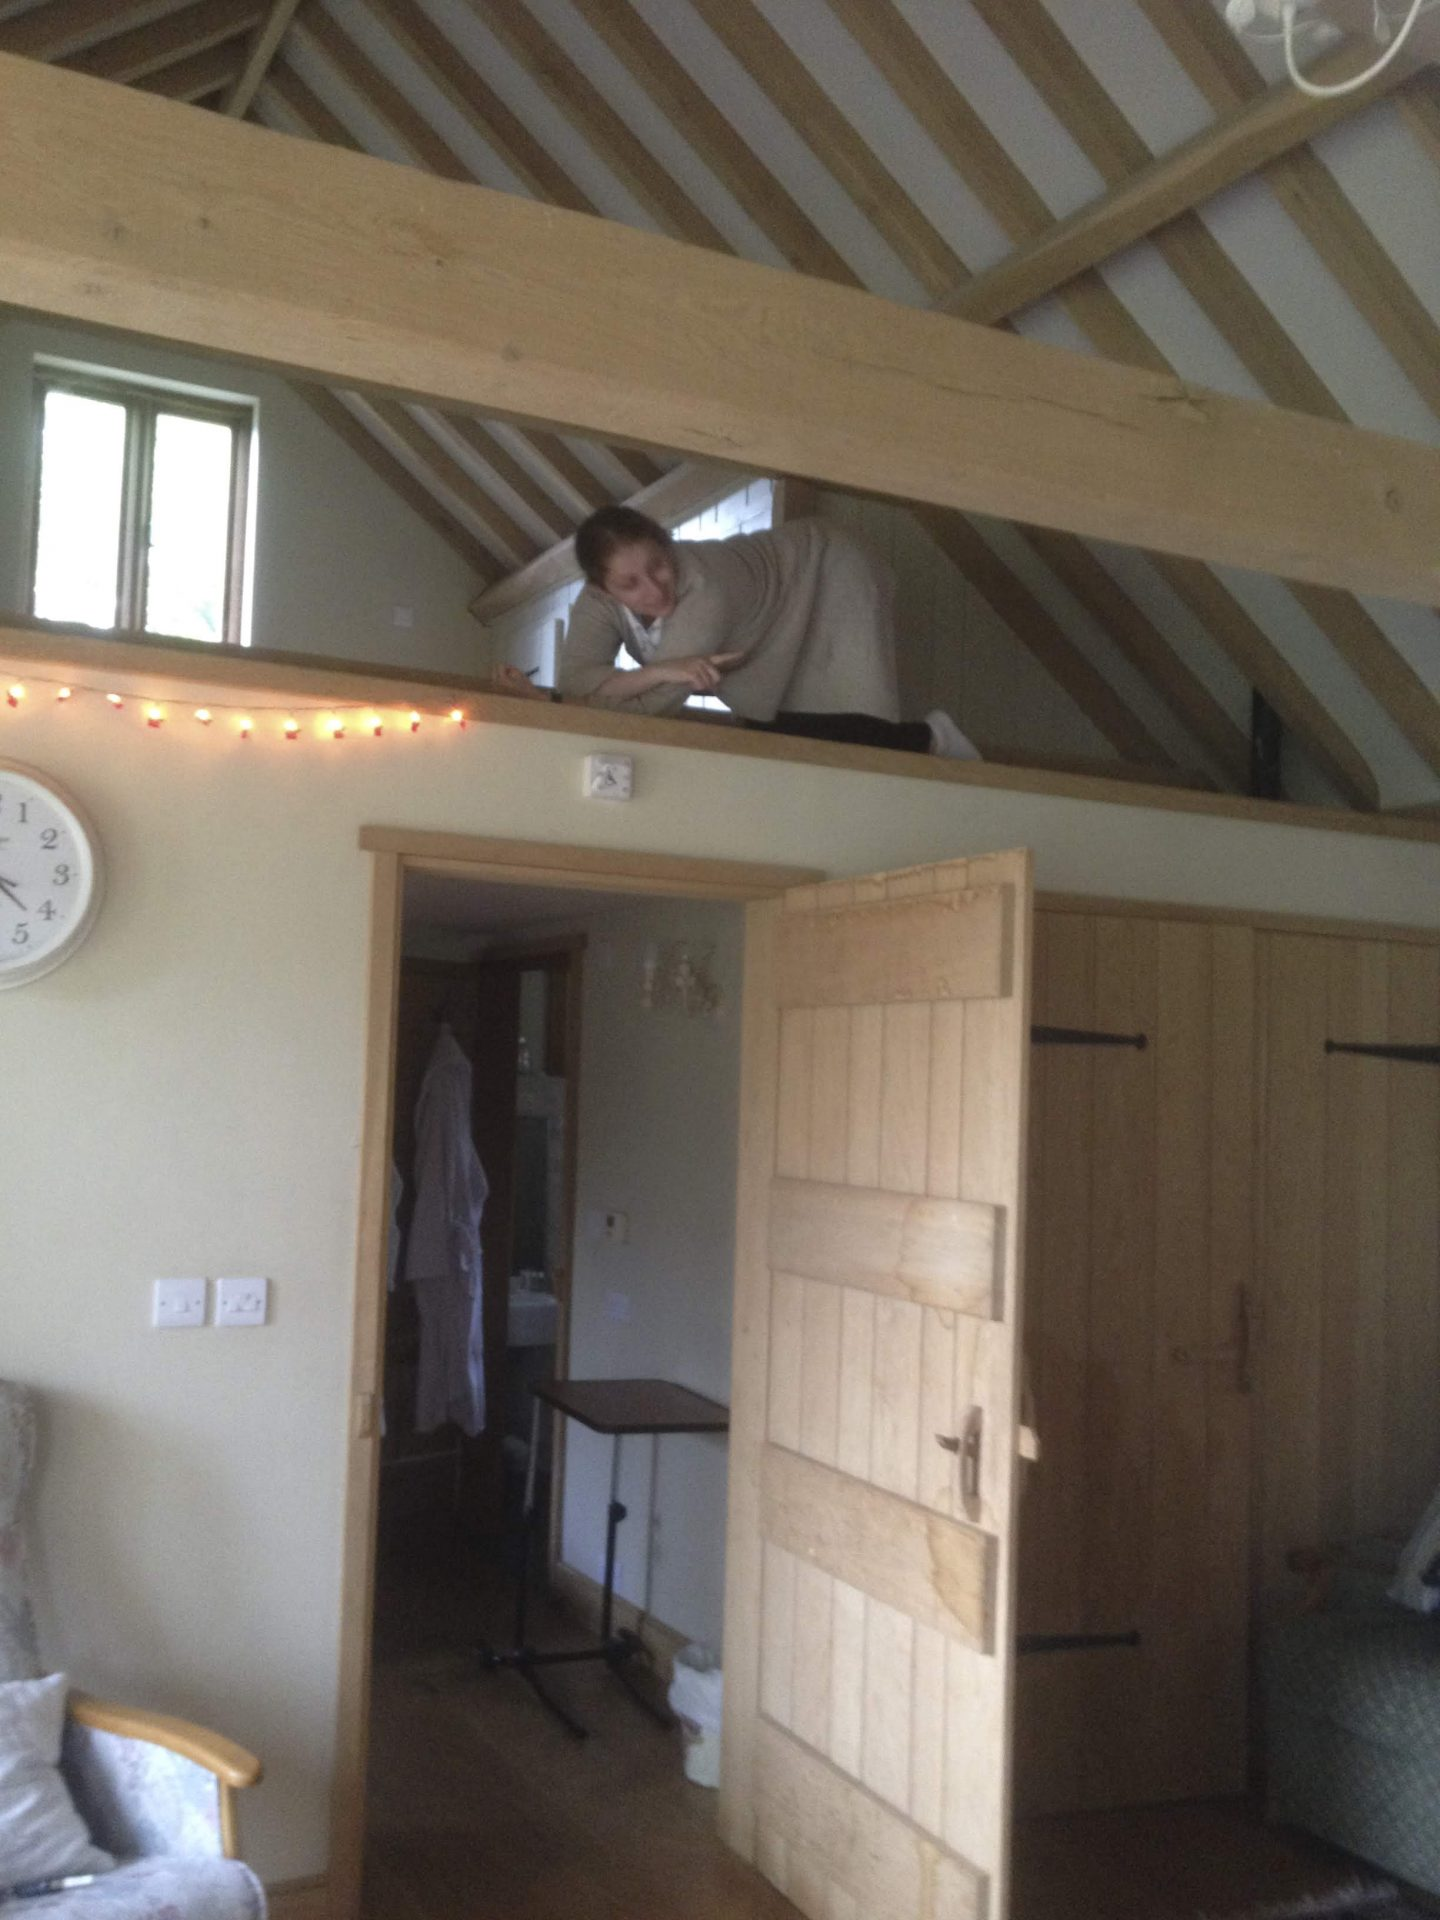 Carer laying in the roof space of the barn